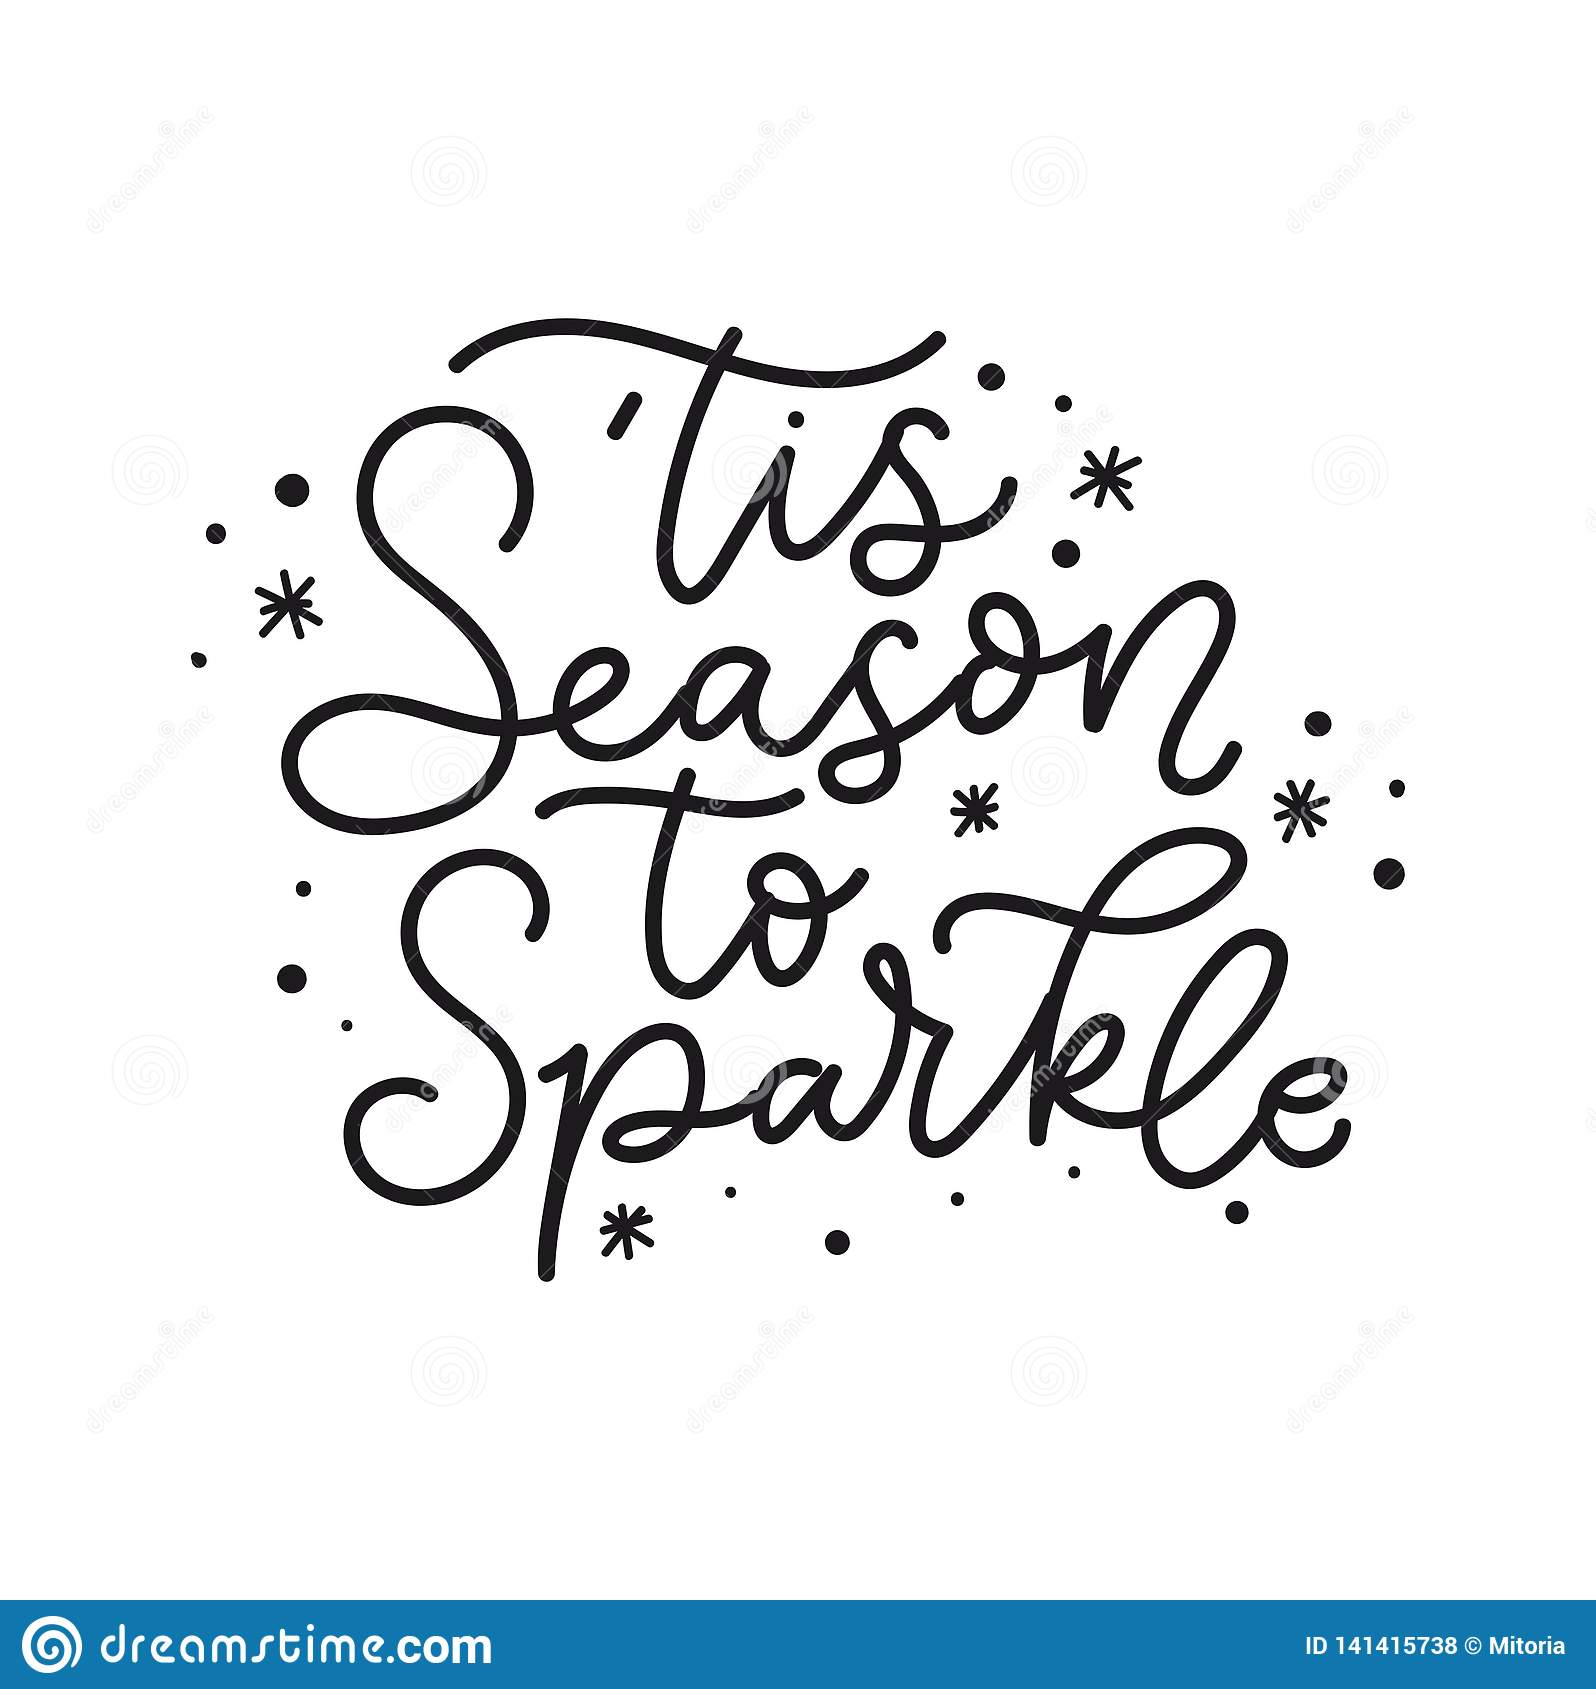 Tis Season To Sparkle Holiday Card Inspirational Christmas Lettering Quote With Doodles Vector Illustration Stock Vector Illustration Of Celebration Cute 141415738